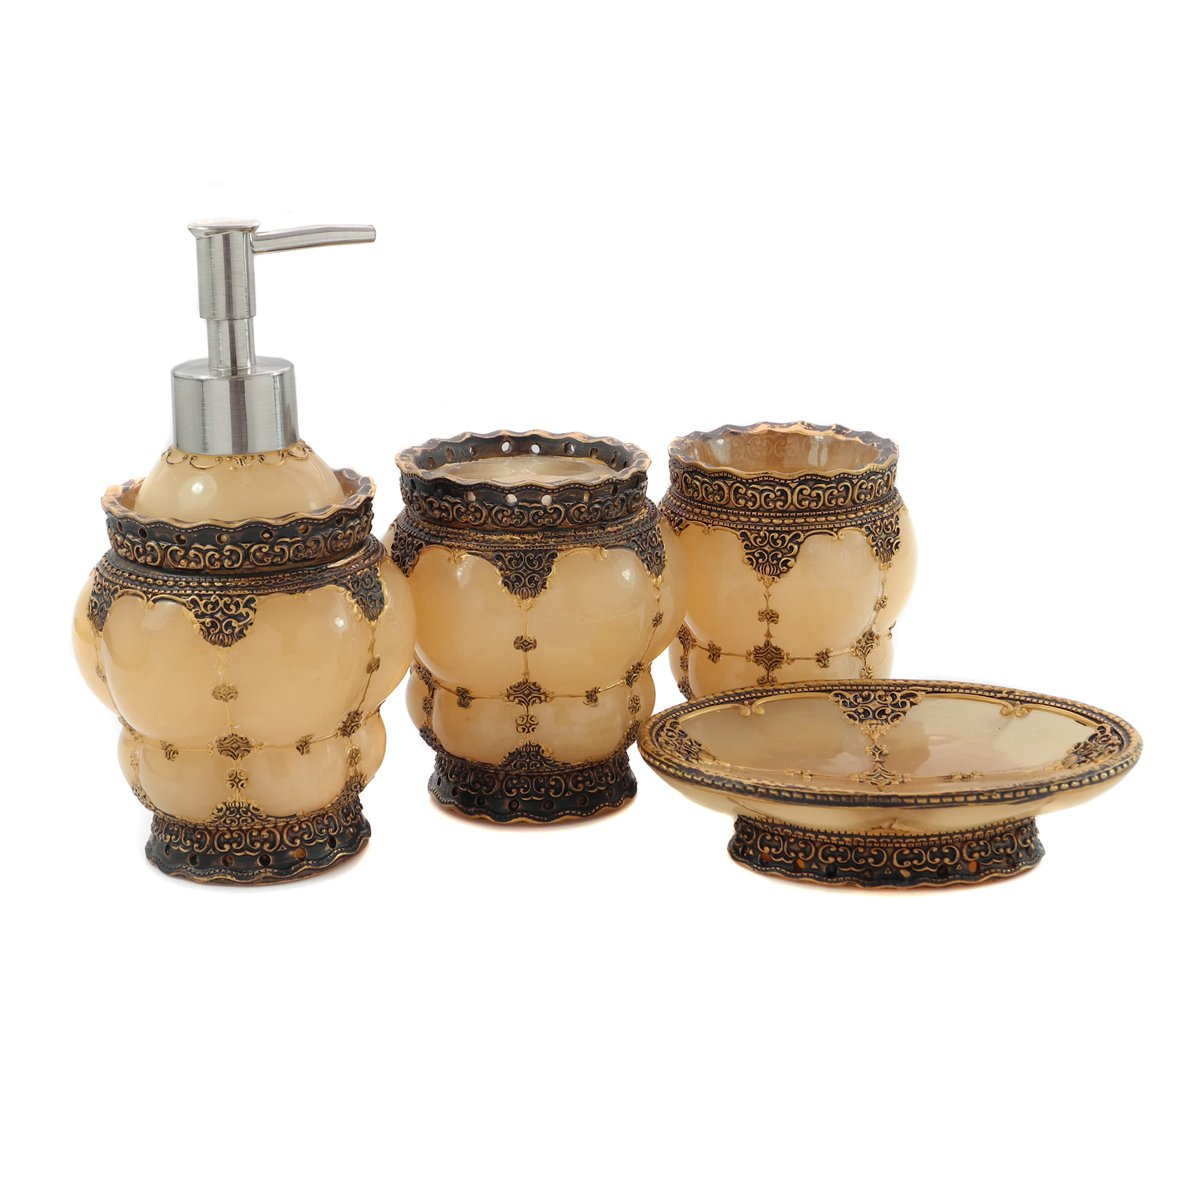 Dream bath royal palace 4 piece bathroom accessories for Bathroom accessories collection